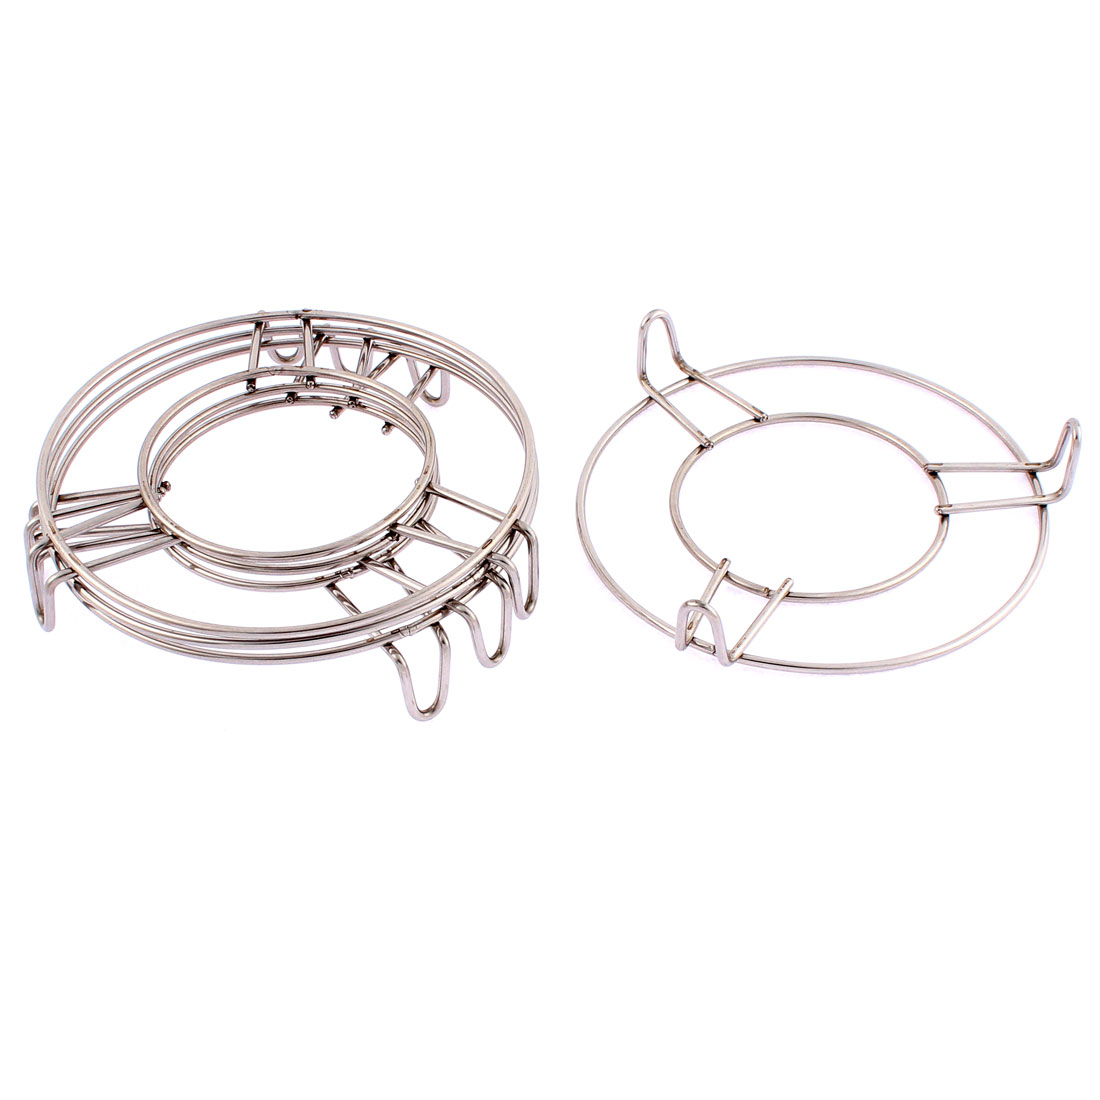 Stainless Steel Round 3 Legs Steaming Rack Stand 5 Inch x 1 Inch 4 Pcs